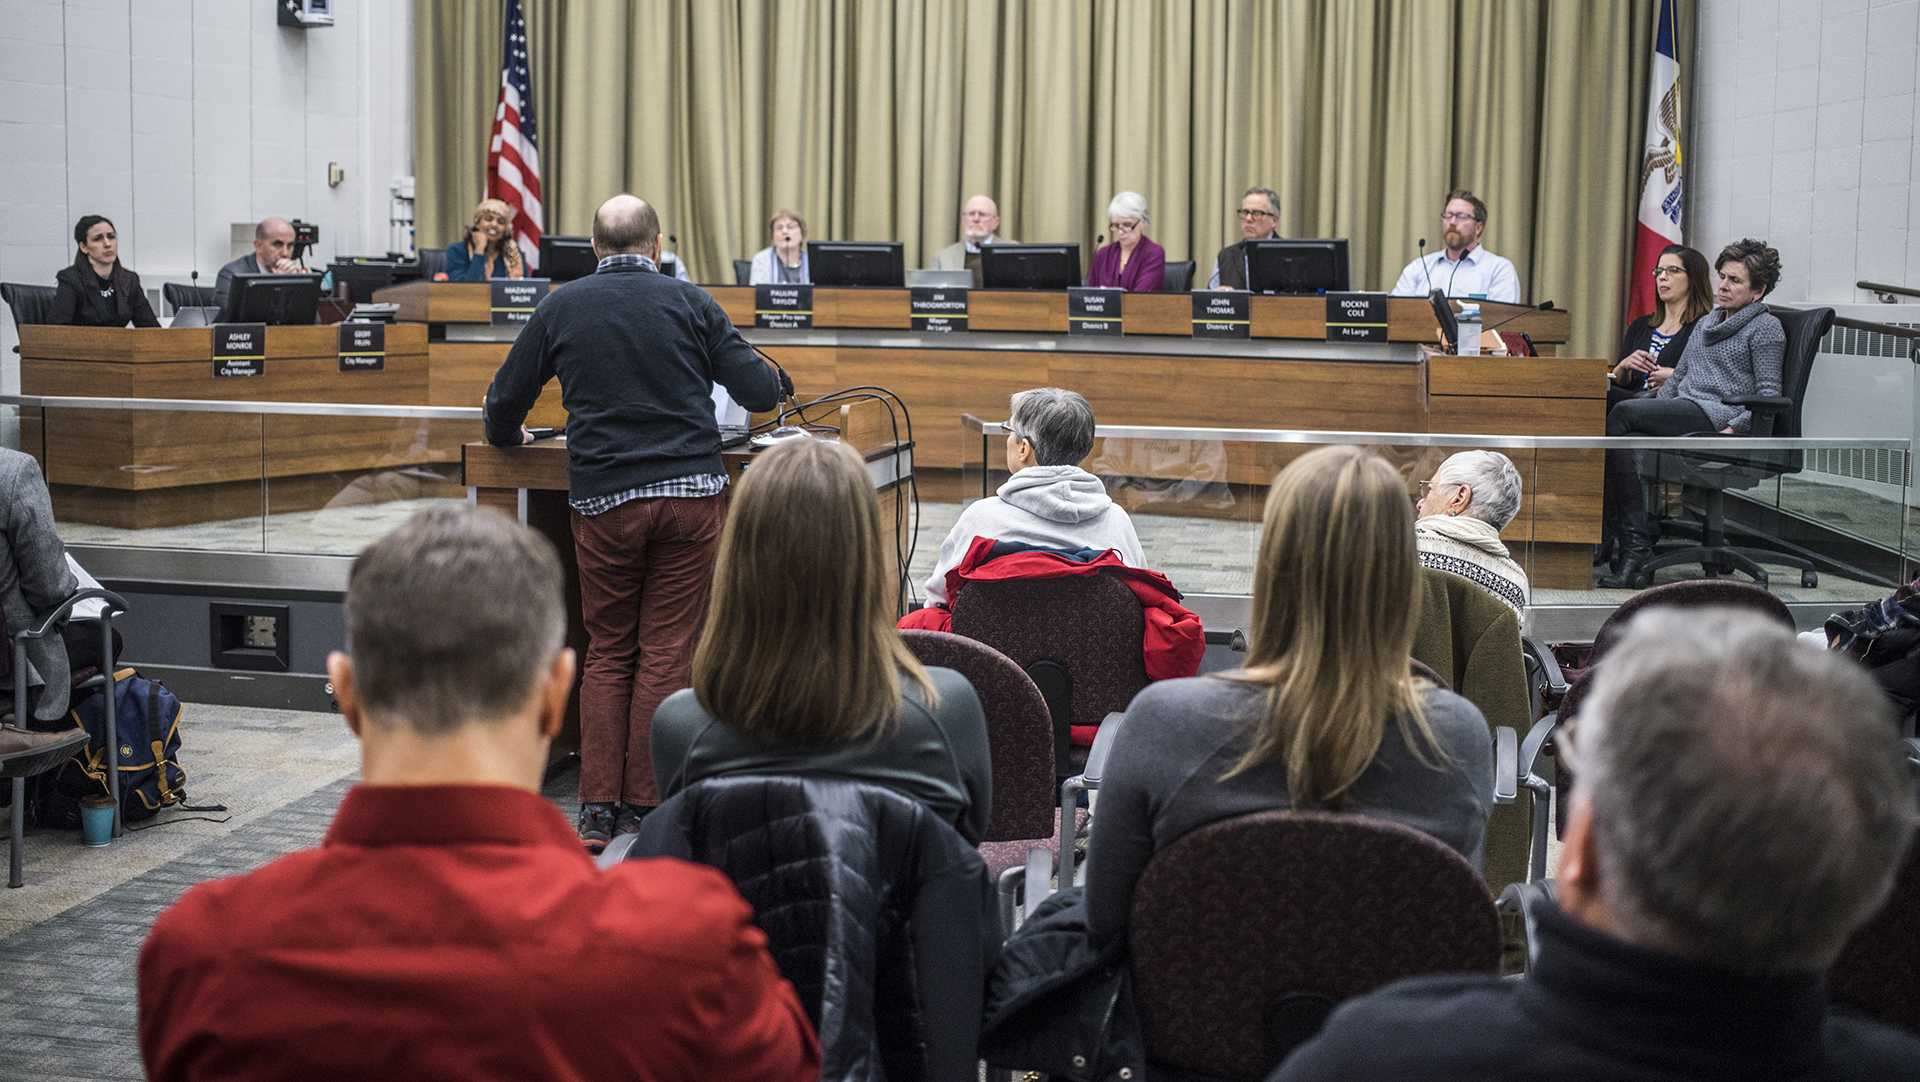 The Iowa City Council meeting as seen on Tuesday, Feb. 6, 2018. (James Year/The Daily Iowan)